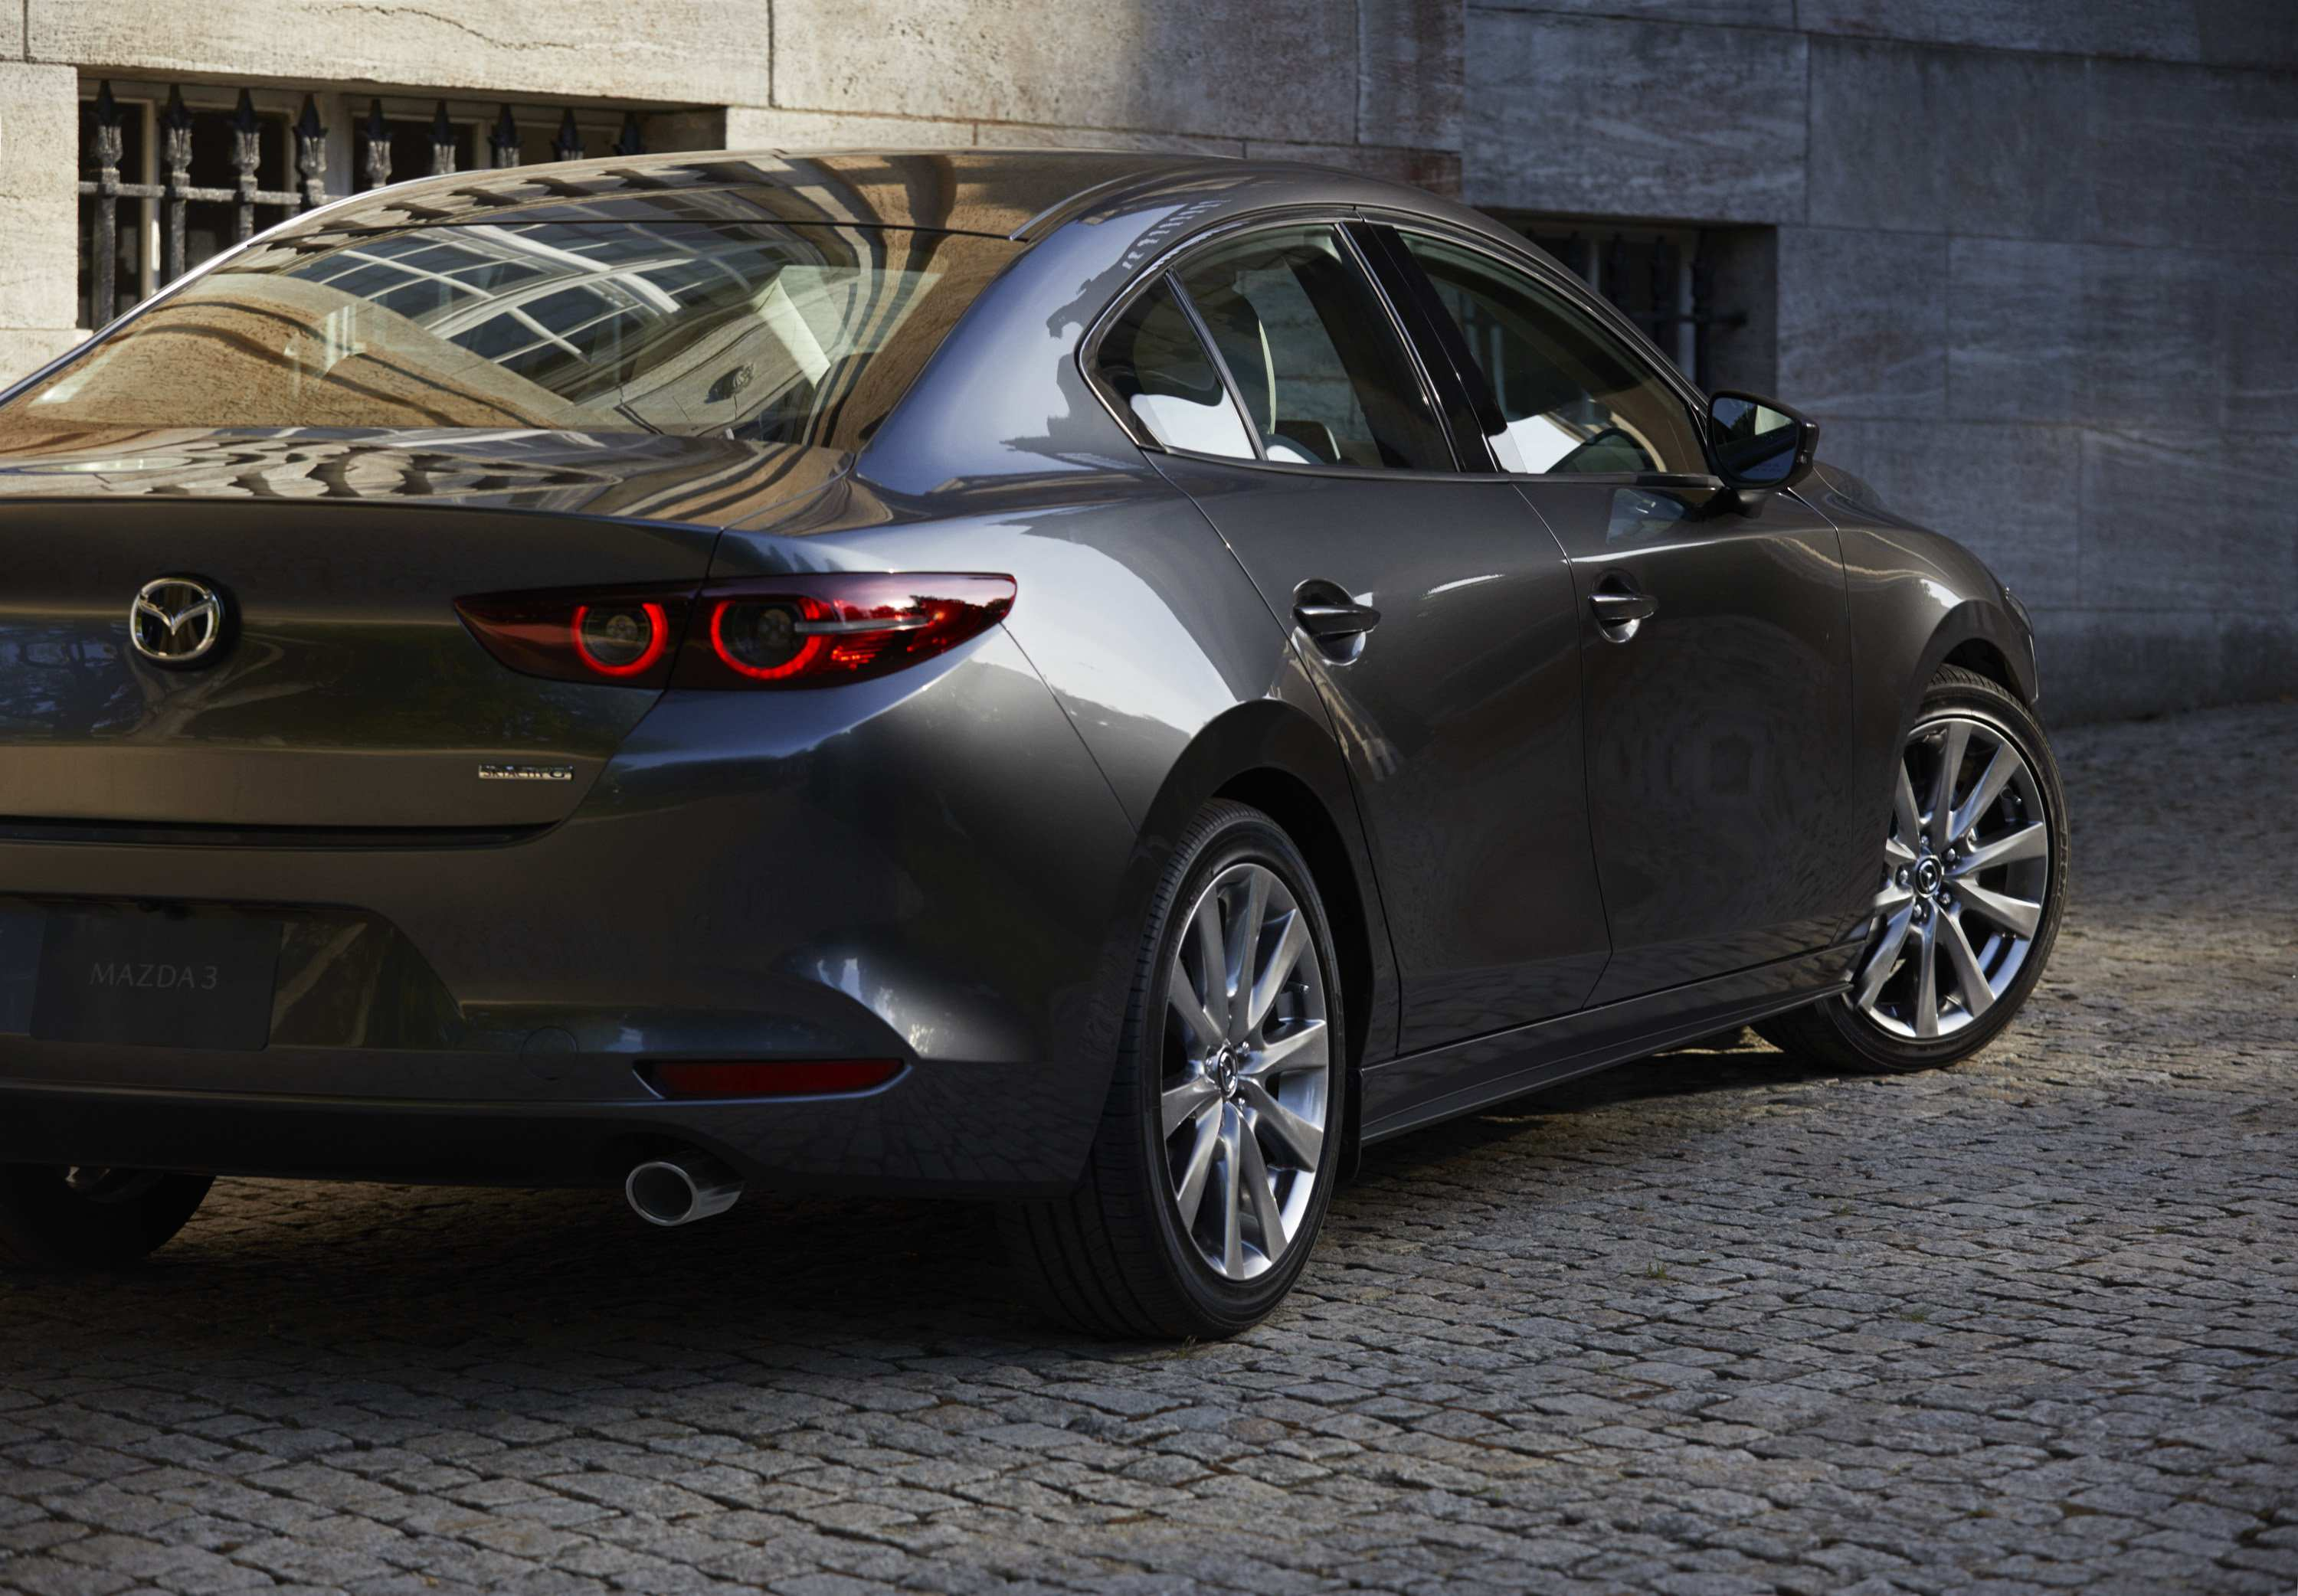 36 New 2019 Mazda 3 Turbo Redesign And Review